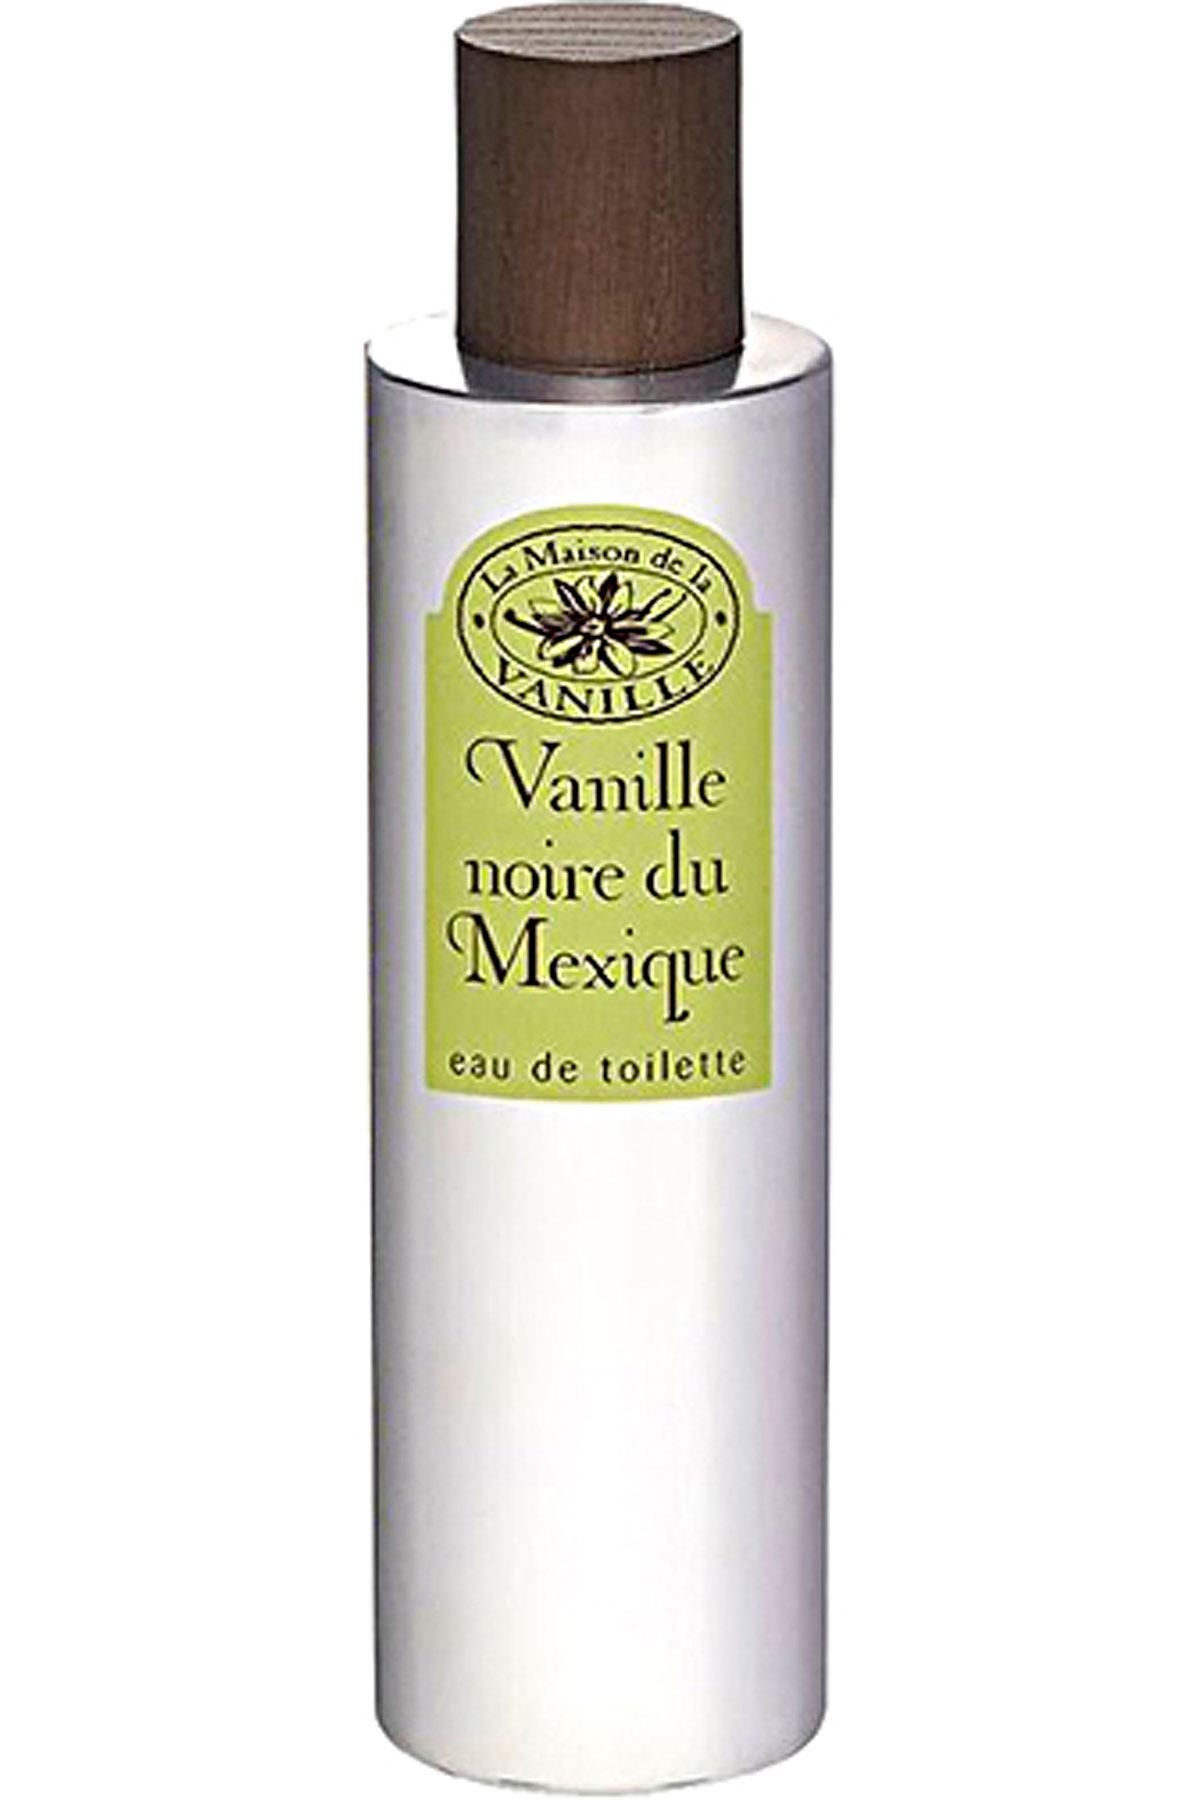 La Maison de la Vanille Fragrances for Women On Sale, Vanille Noire Du Mexique - Eau De Toilette - 100 Ml, 2019, 100 ml